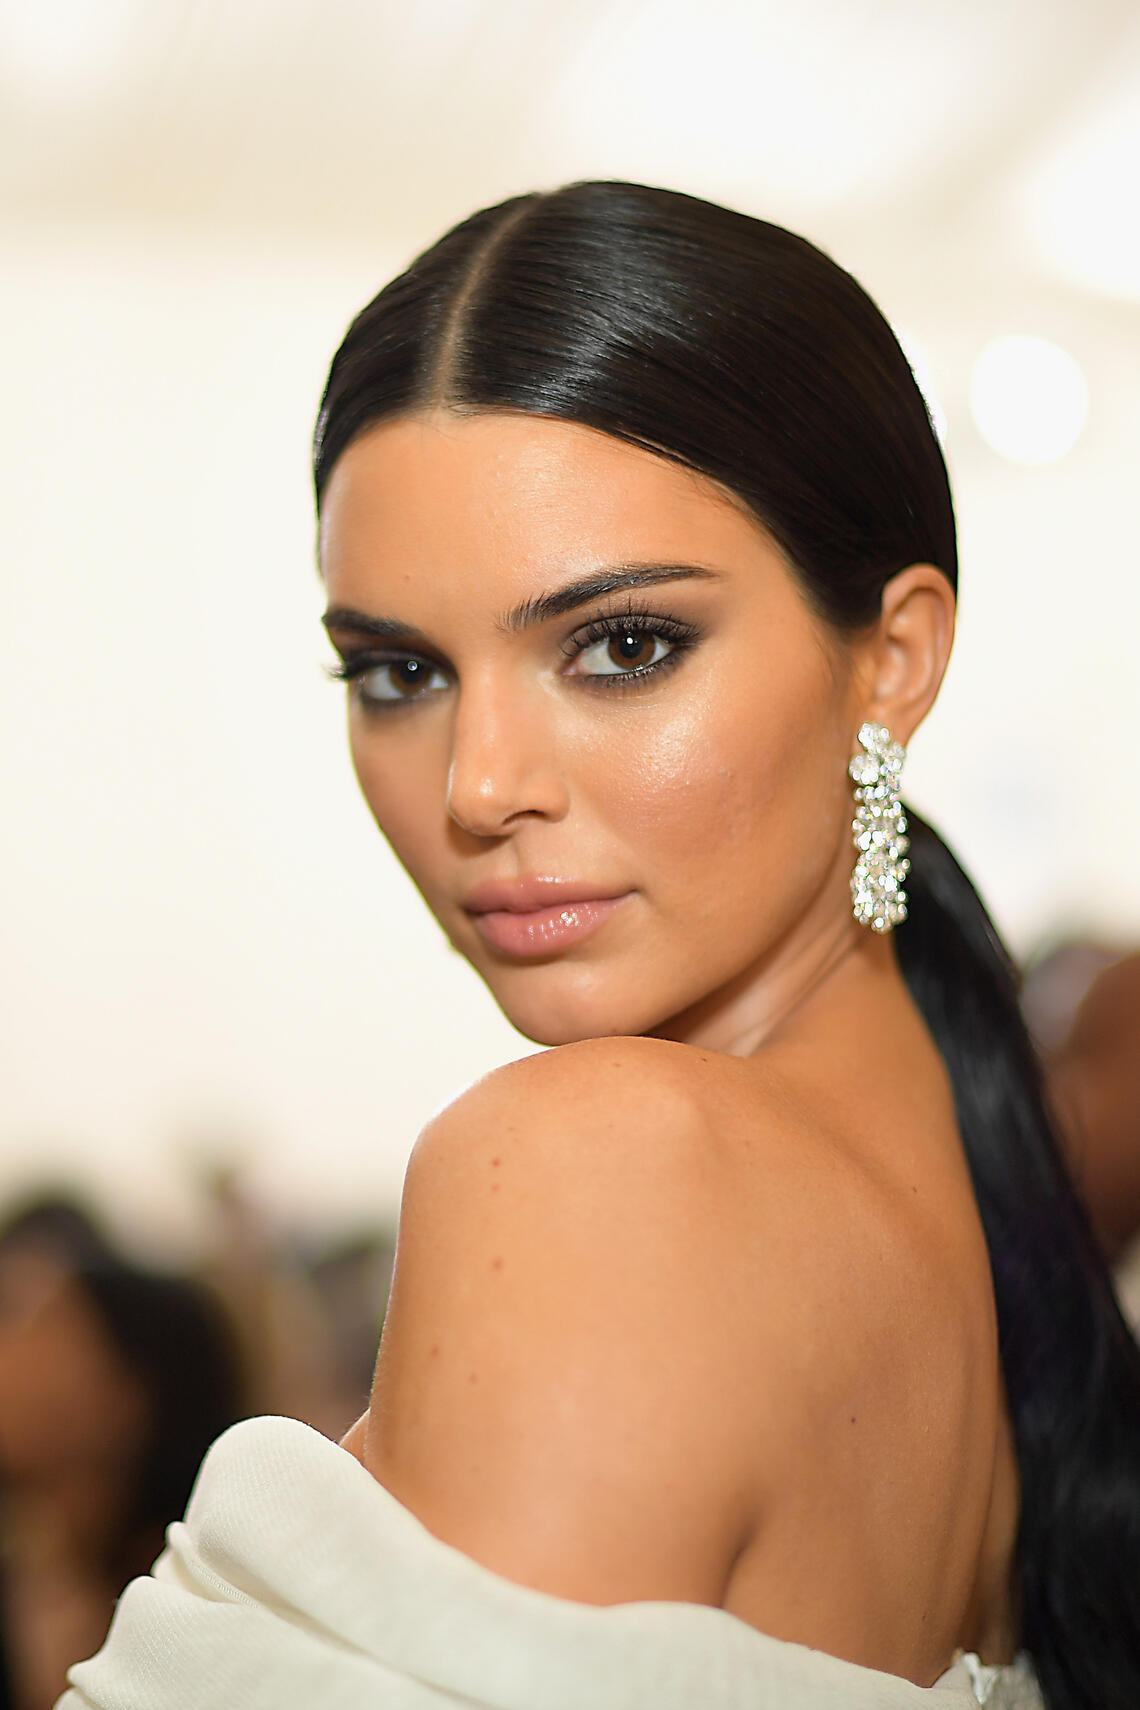 NEW YORK, NY - MAY 07: Kendall Jenner attends the Heavenly Bodies: Fashion & The Catholic Imagination Costume Institute Gala at The Metropolitan Museum of Art on May 7, 2018 in New York City.  (Photo by Matt Winkelmeyer/MG18/Getty Images for The Met Museum/Vogue)